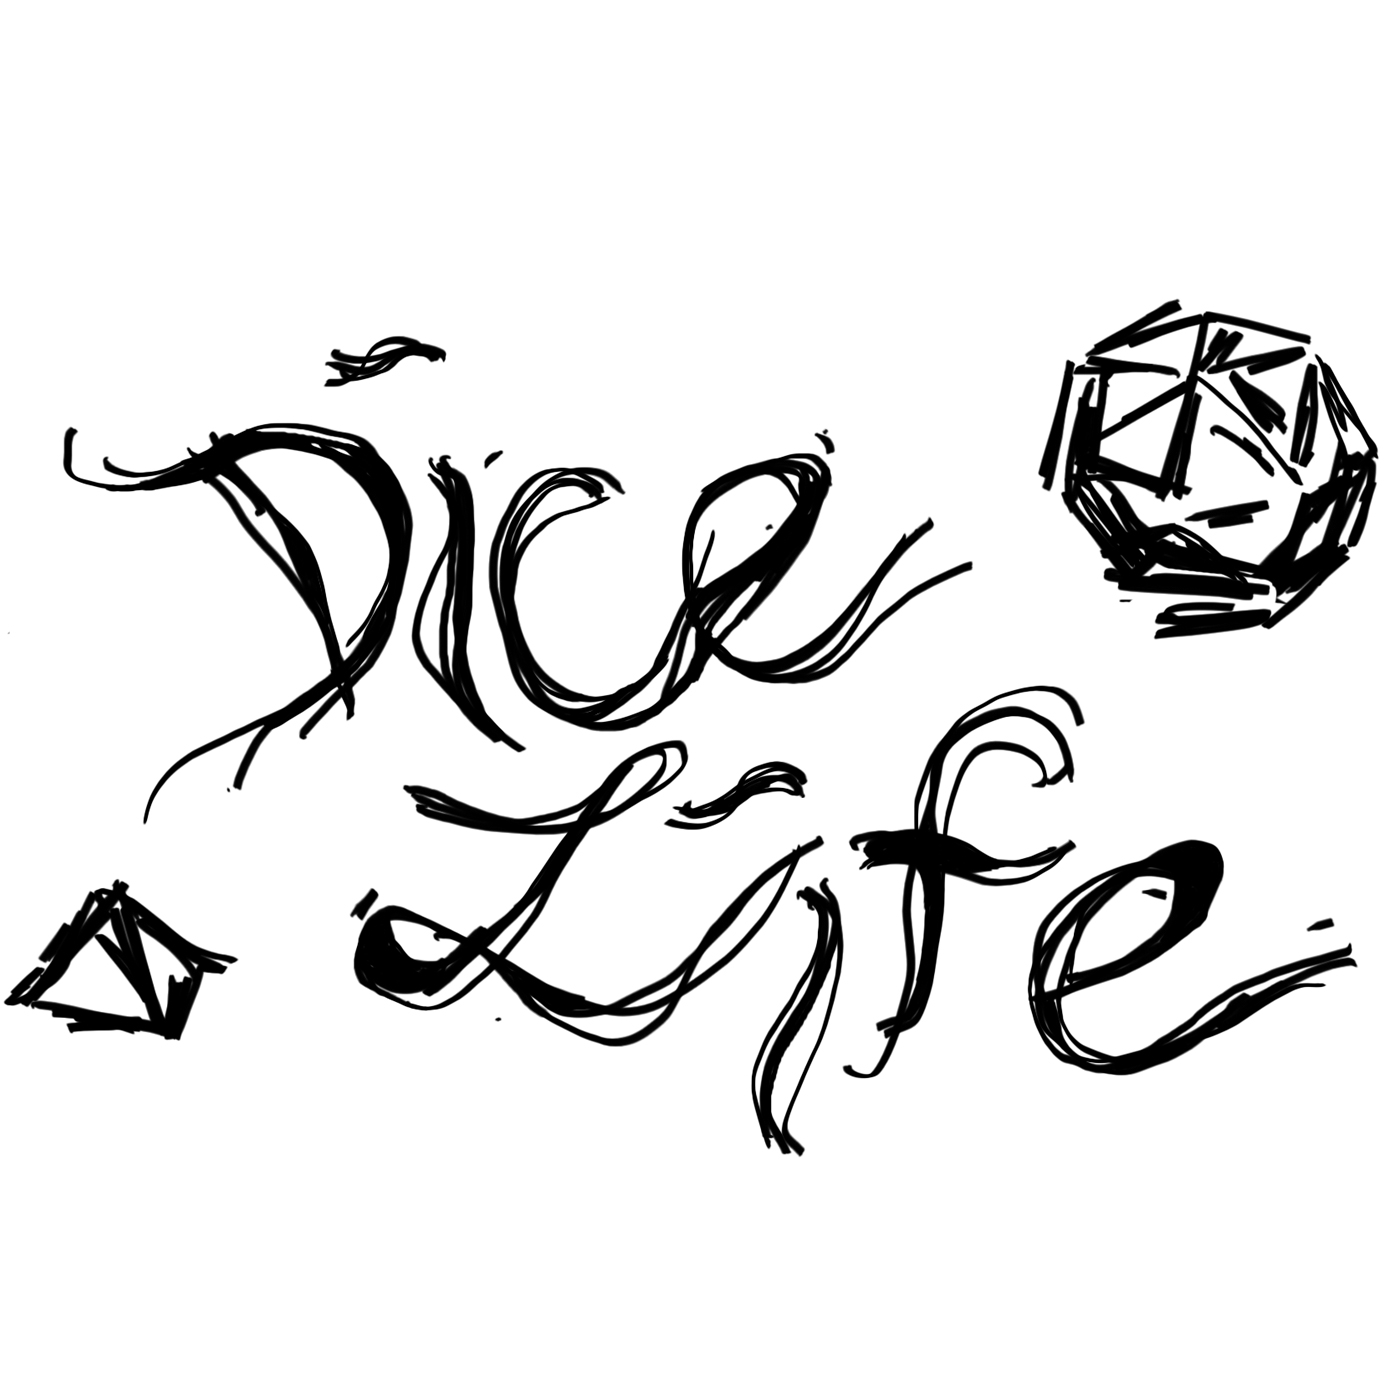 Dice Life | Listen via Stitcher for Podcasts